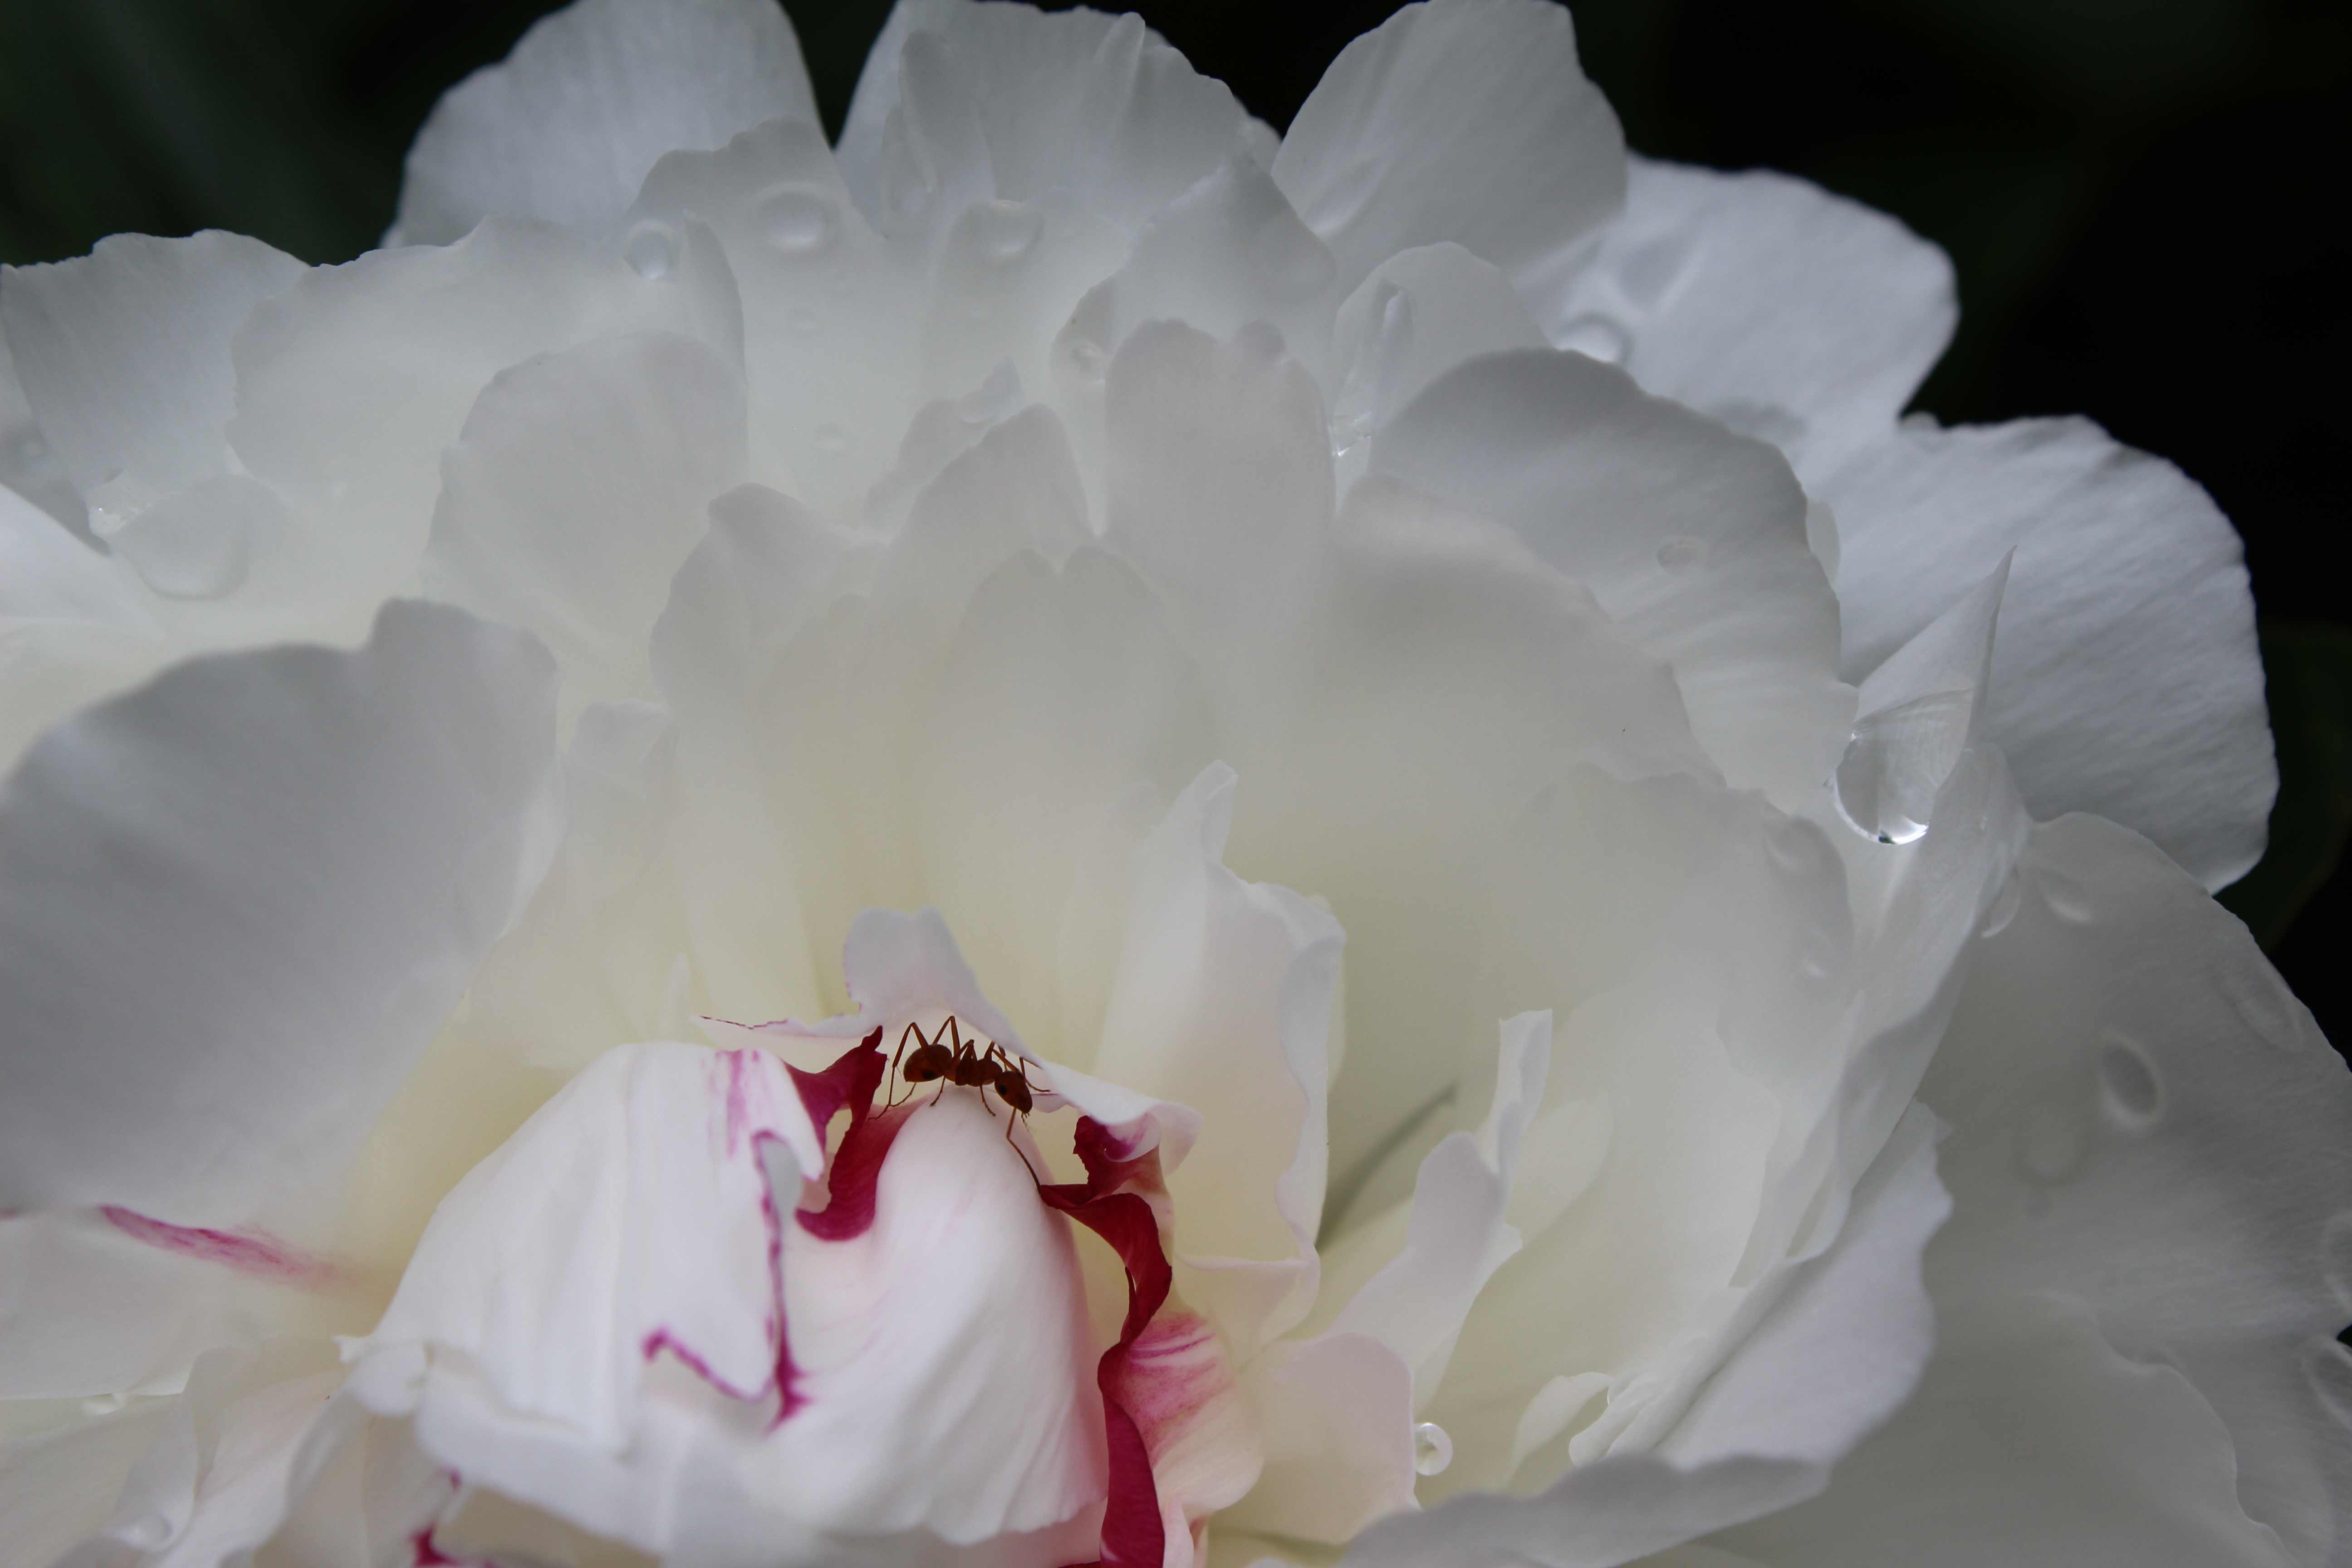 white peony with an ant in the petals